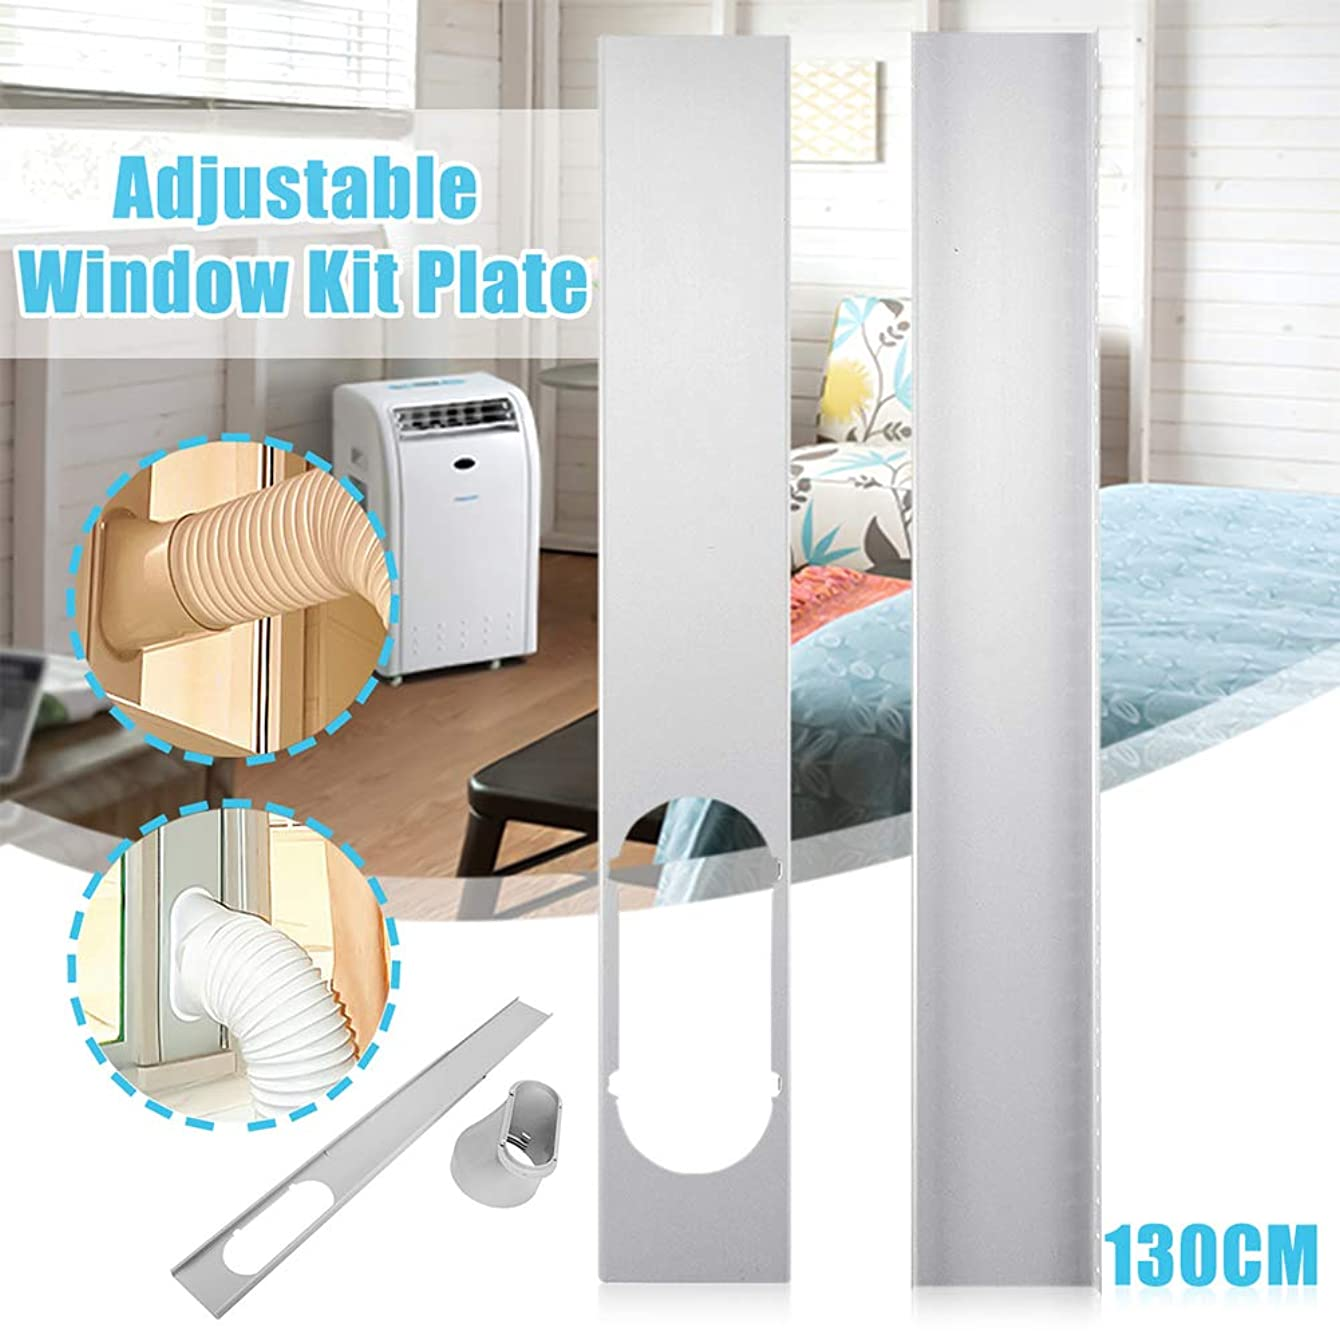 bromrefulgenc Universal Window Seal,Window Kit Plate for Air Conditioner and Tumble Dryer-Works with Every Air-Conditioning Unit - Air Exchange Guards and Adhesive Fastener 2#